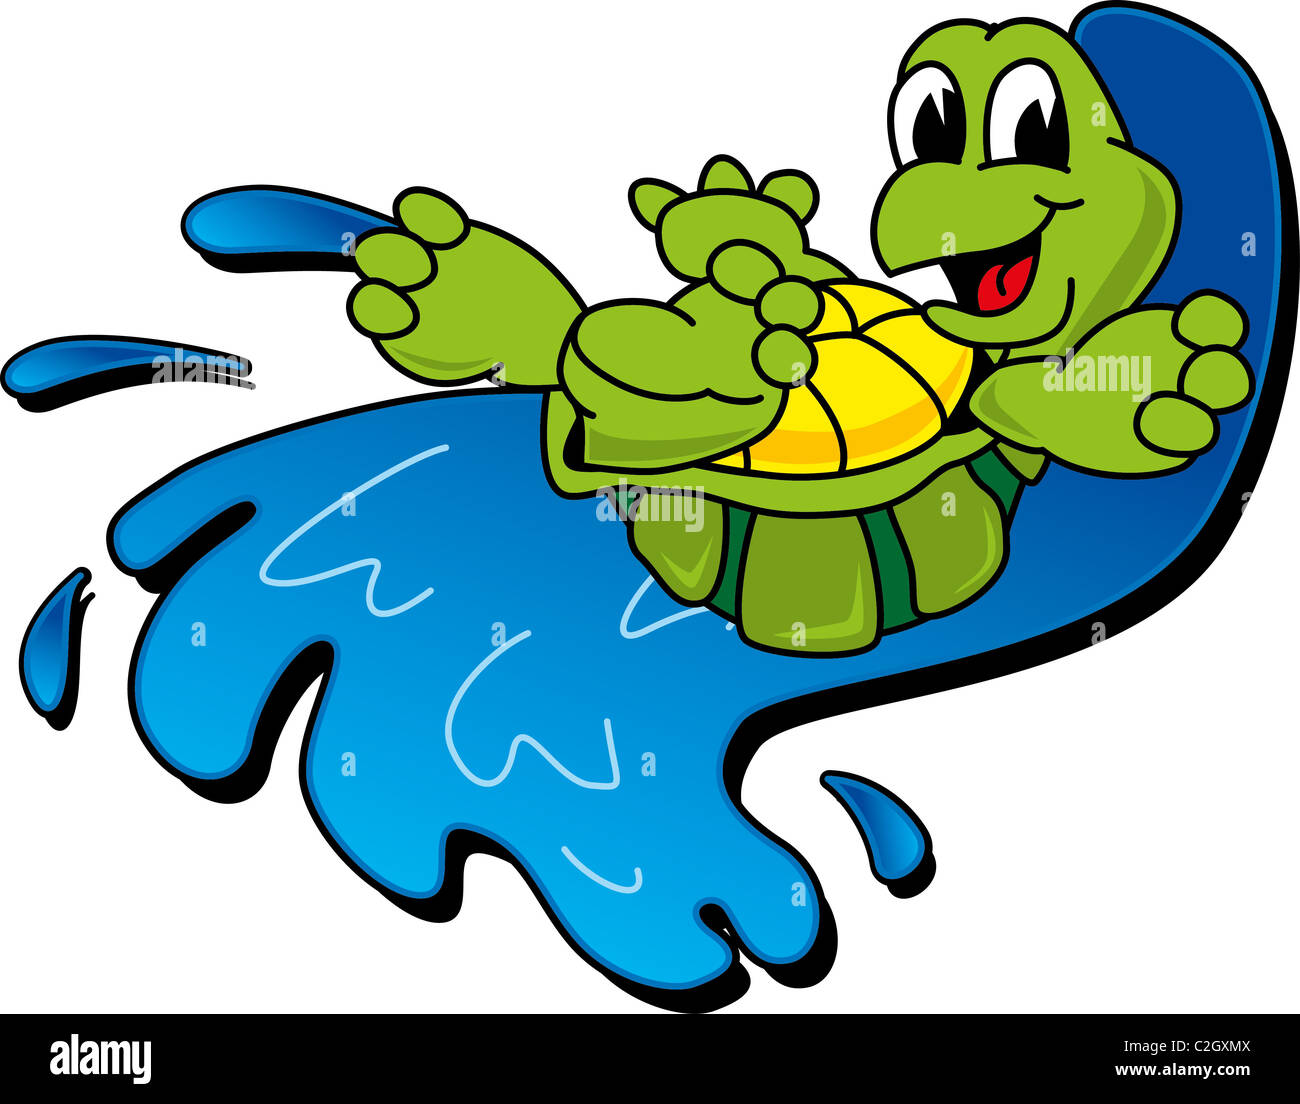 Cartoon Turtle Riding a Wave Stock Photo Royalty Free Image